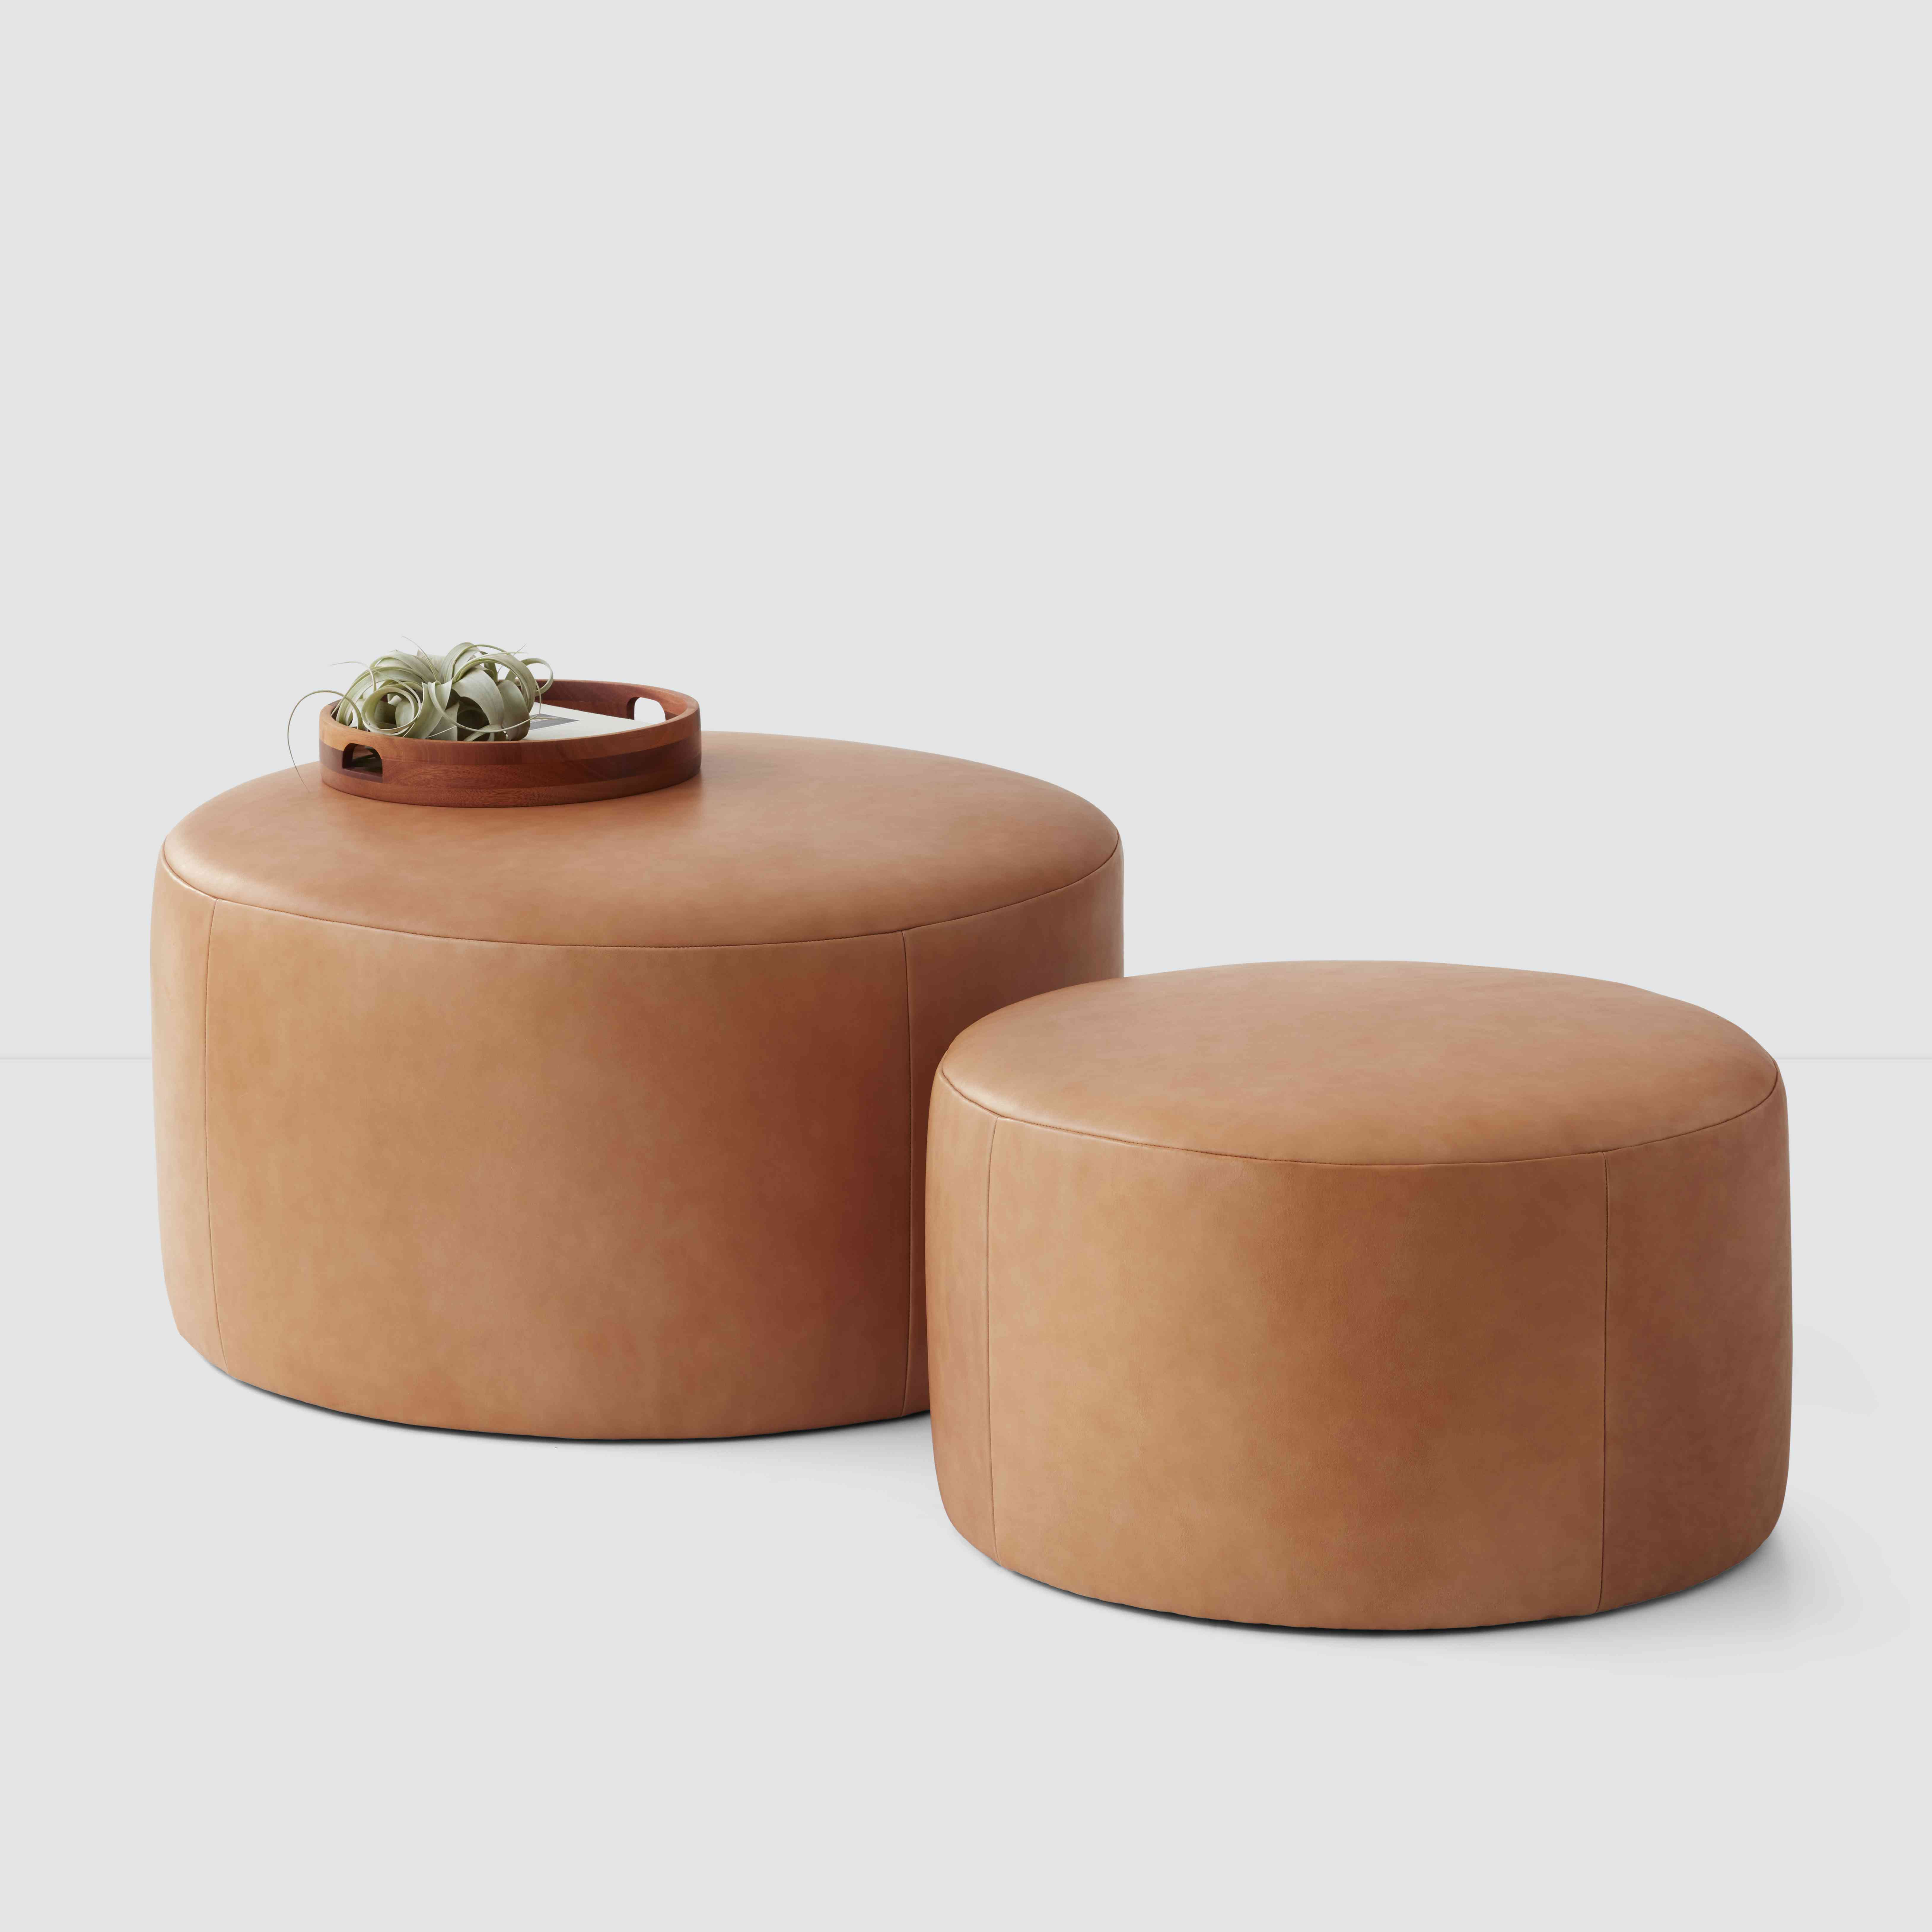 pair of caramel colored round leather ottomans